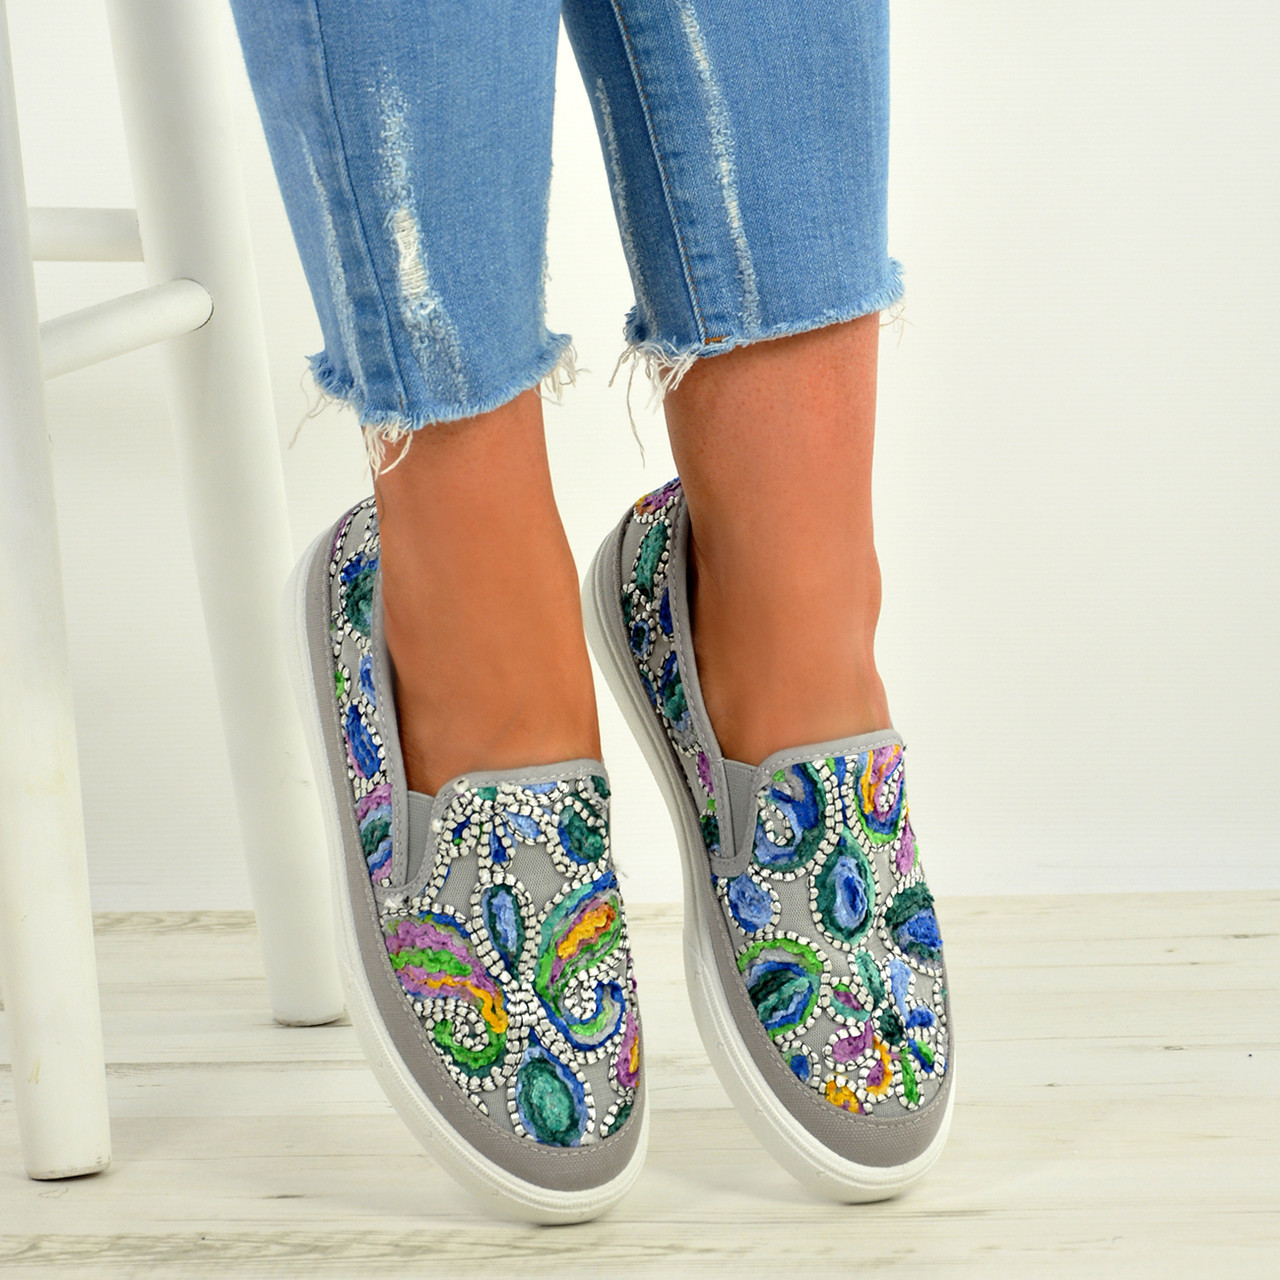 New Mujer Embroidered Flat Trainers Ladies Sneaker Zapatos Plimsolls Slip On Zapatos Sneaker Talla e6e71c